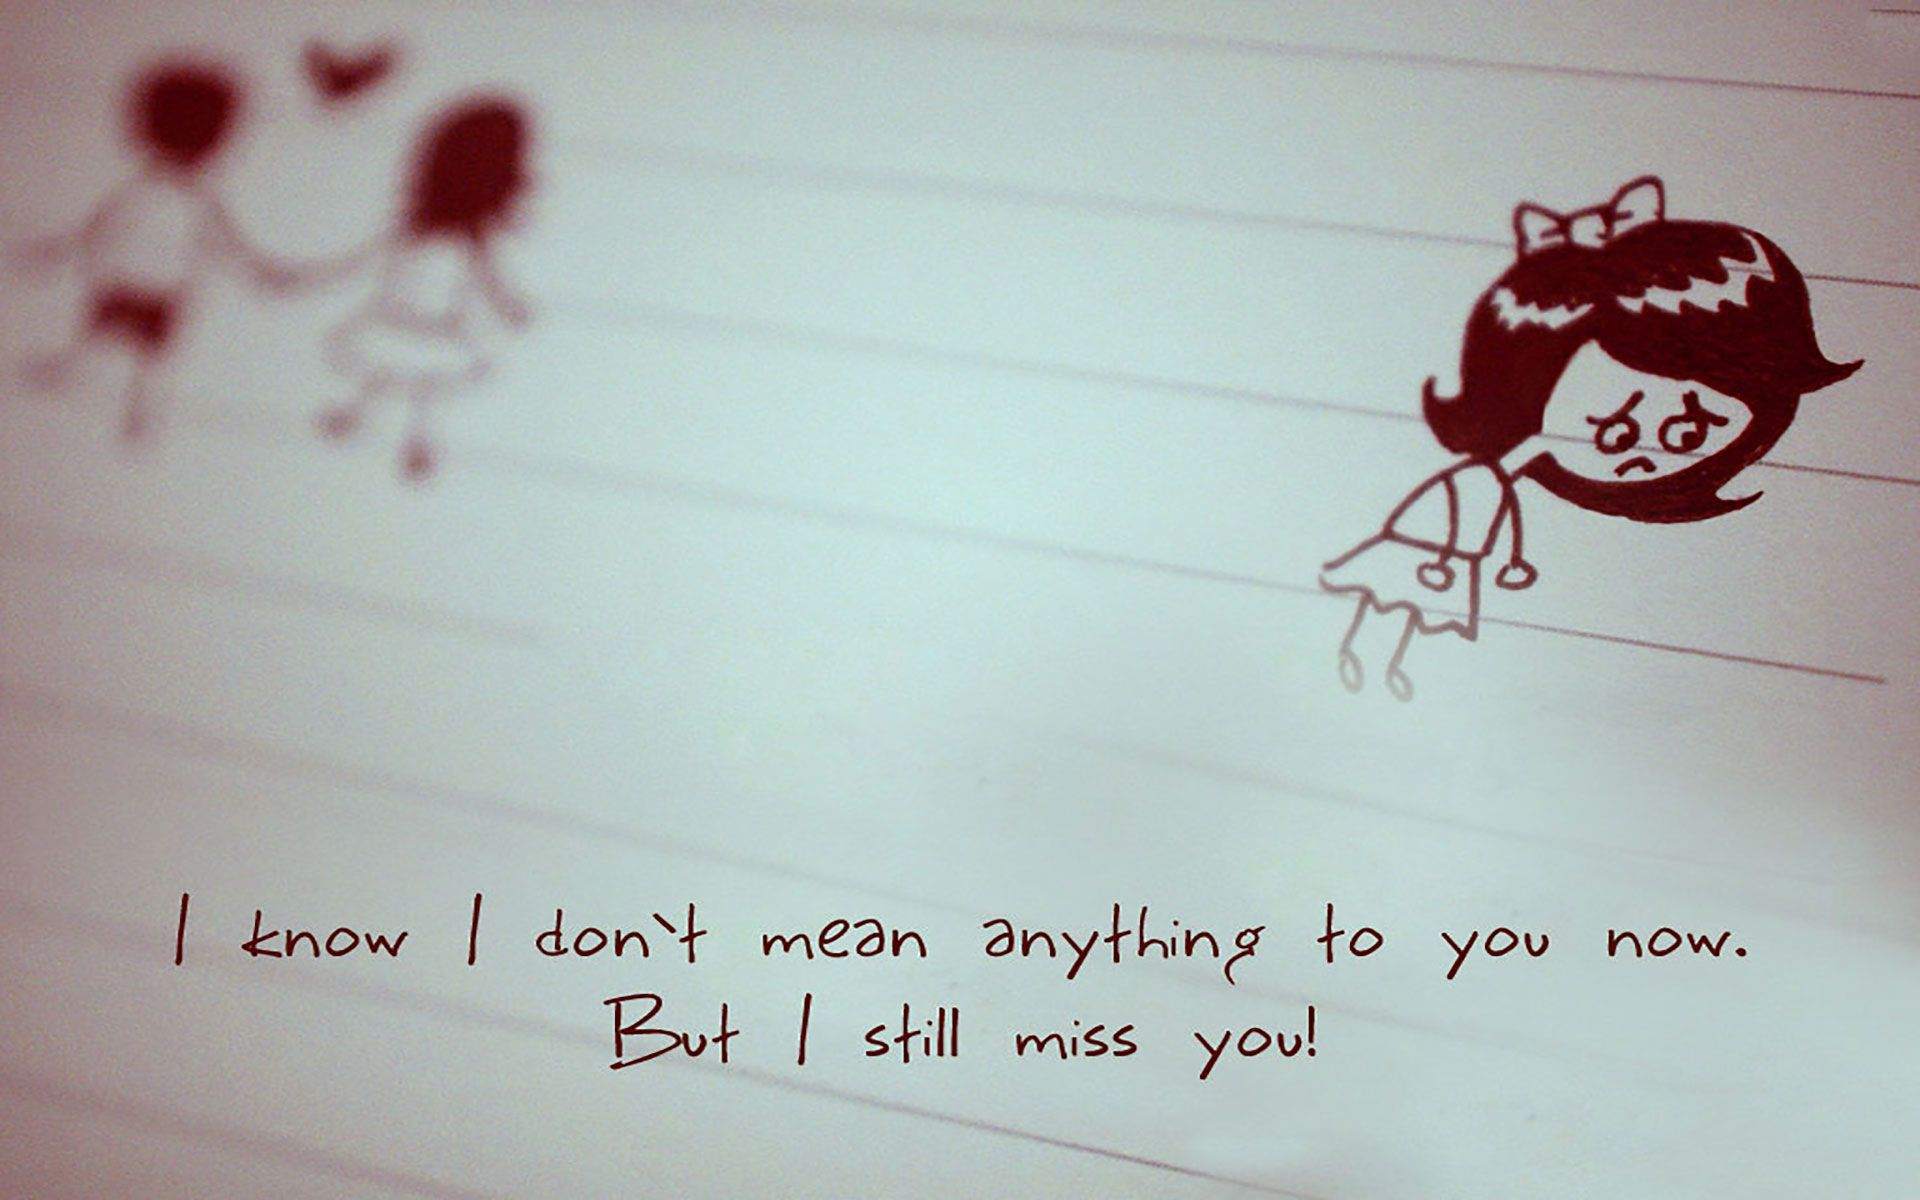 Hd wallpaper you and me - Find This Pin And More On Love Wallpapers I Miss You Hd